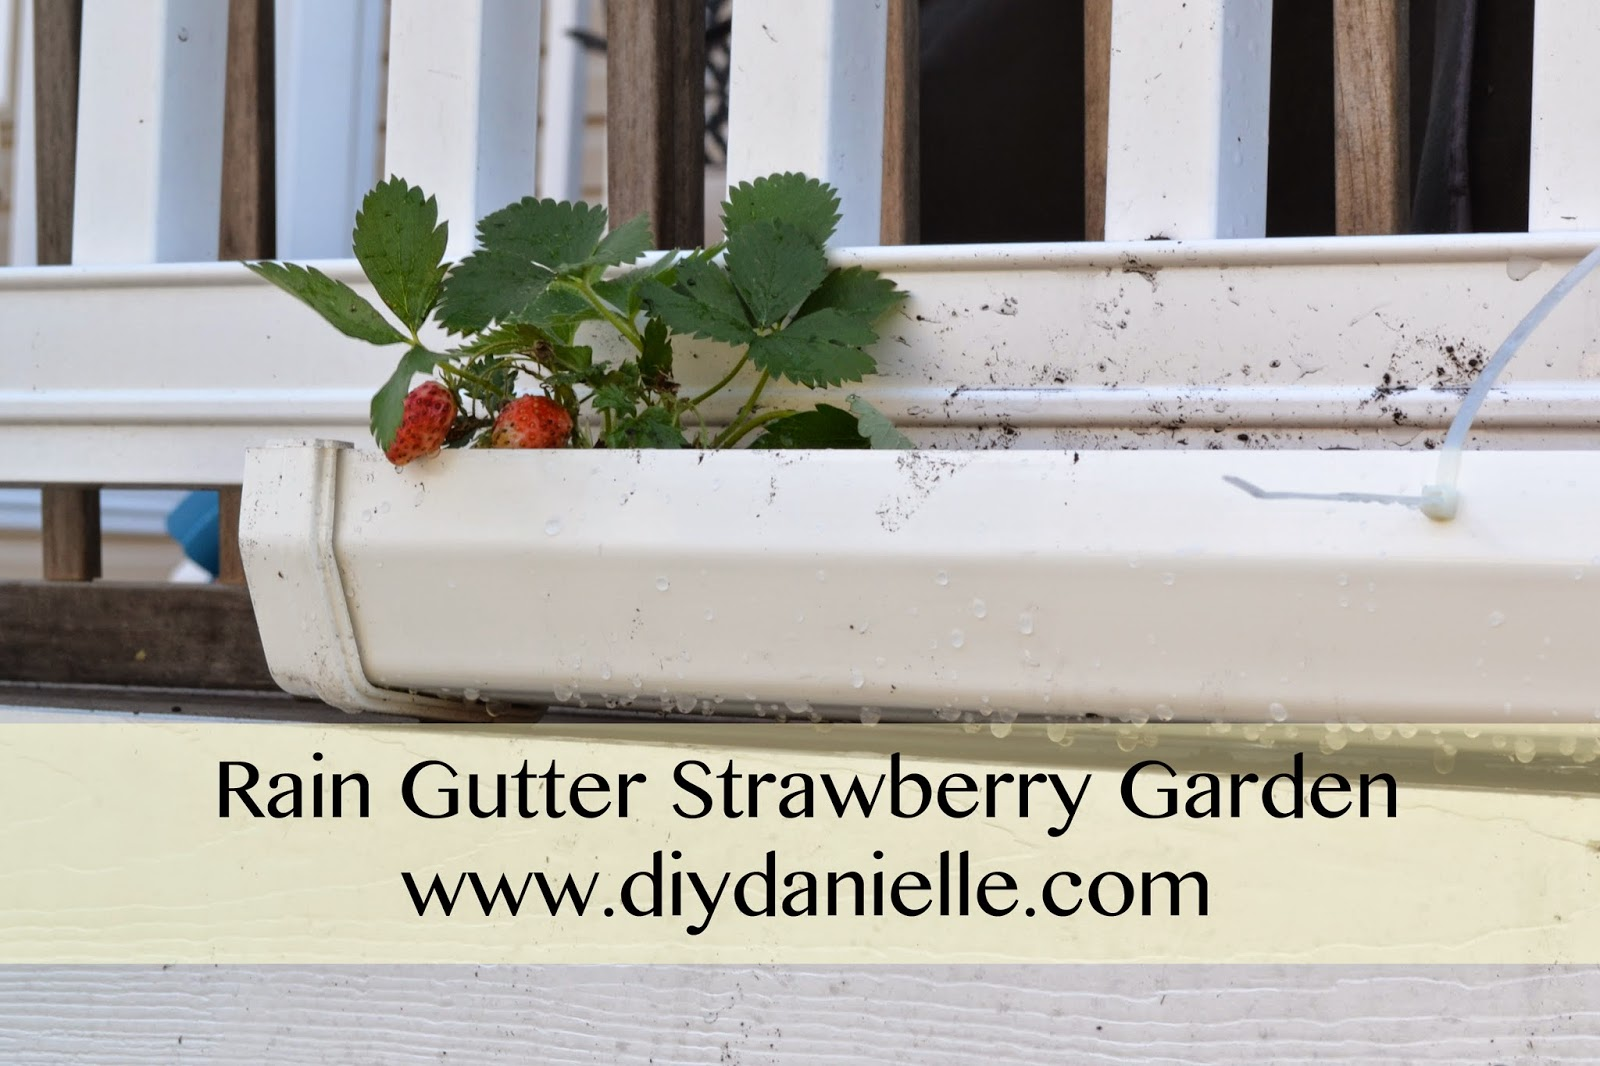 Rain Gutter Strawberry Garden